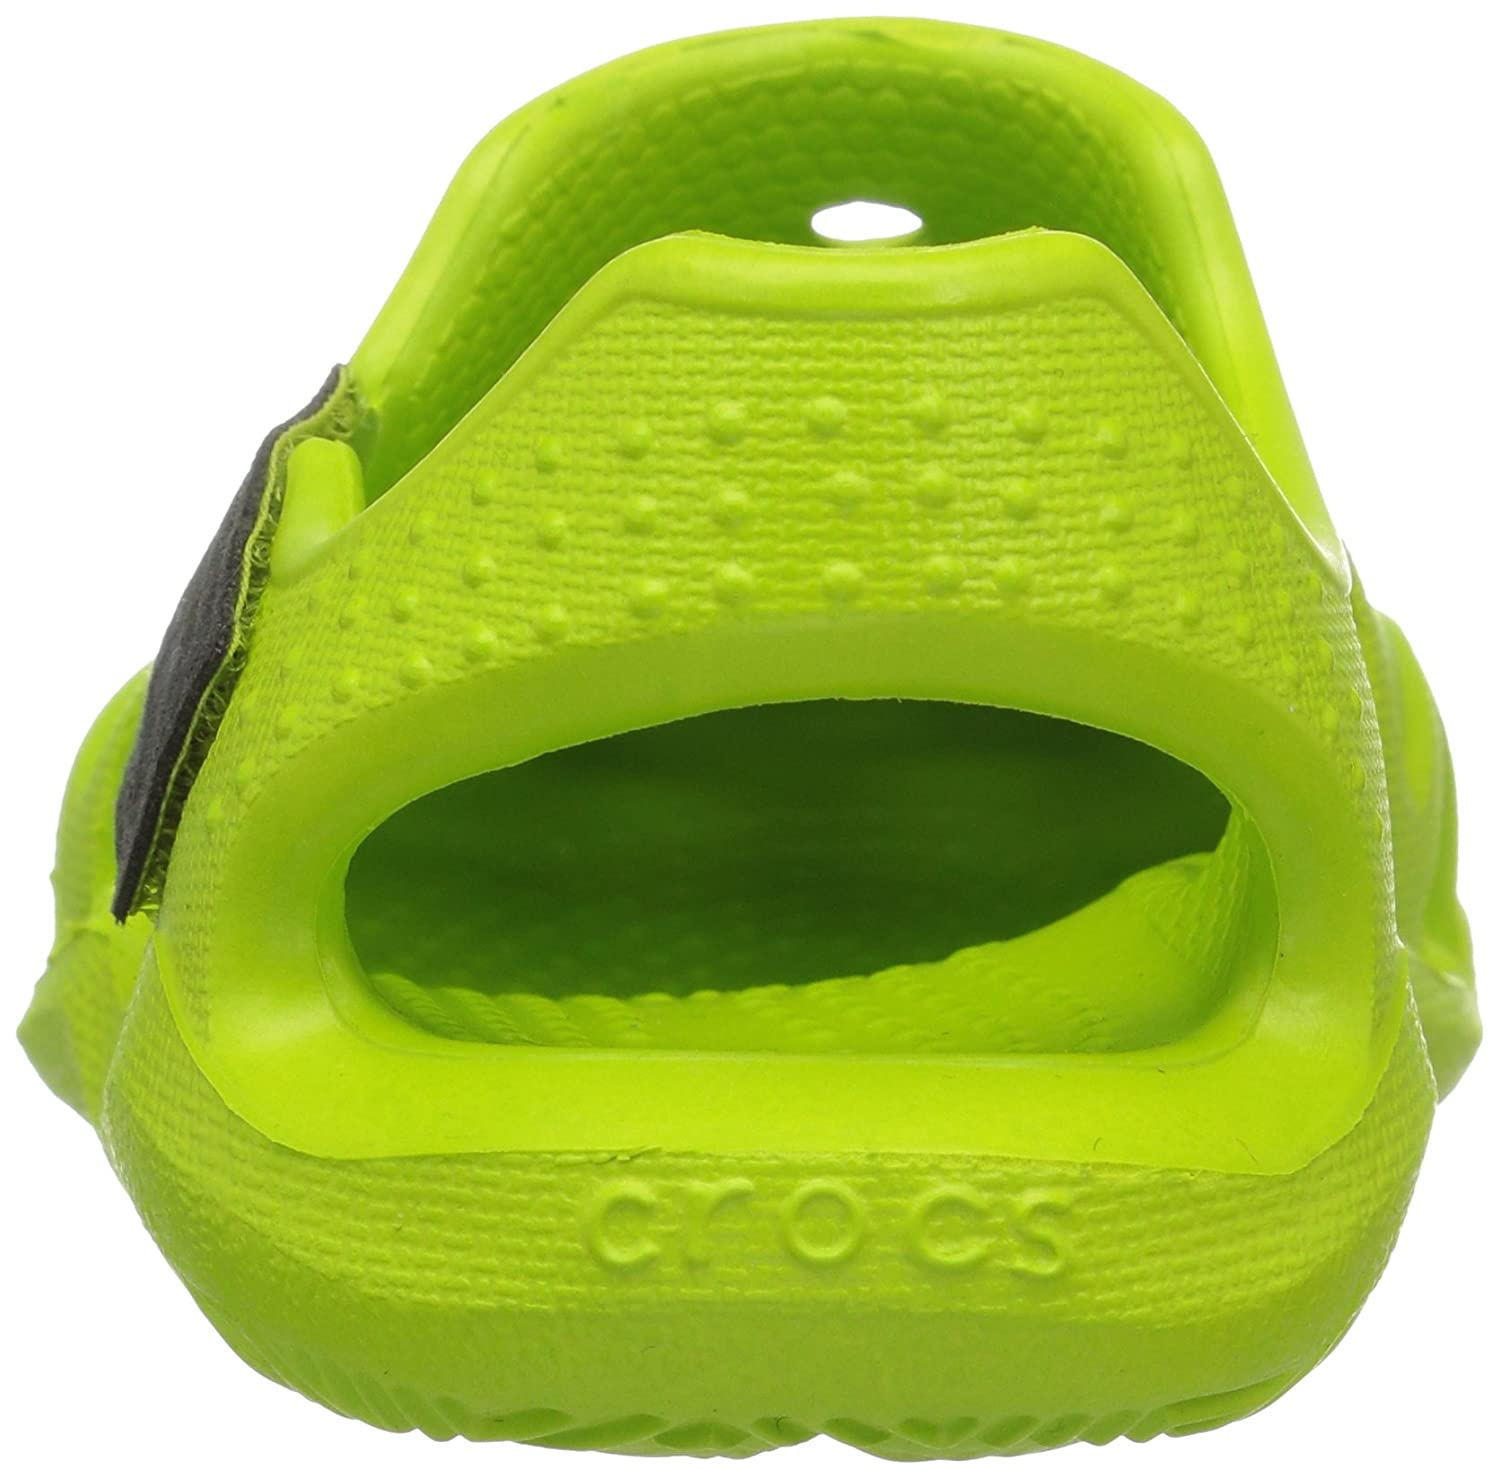 Crocs 204021, Stringate Oxford bambini Unisex, Verde (Mint Pink Lemonade), 30/31 EU